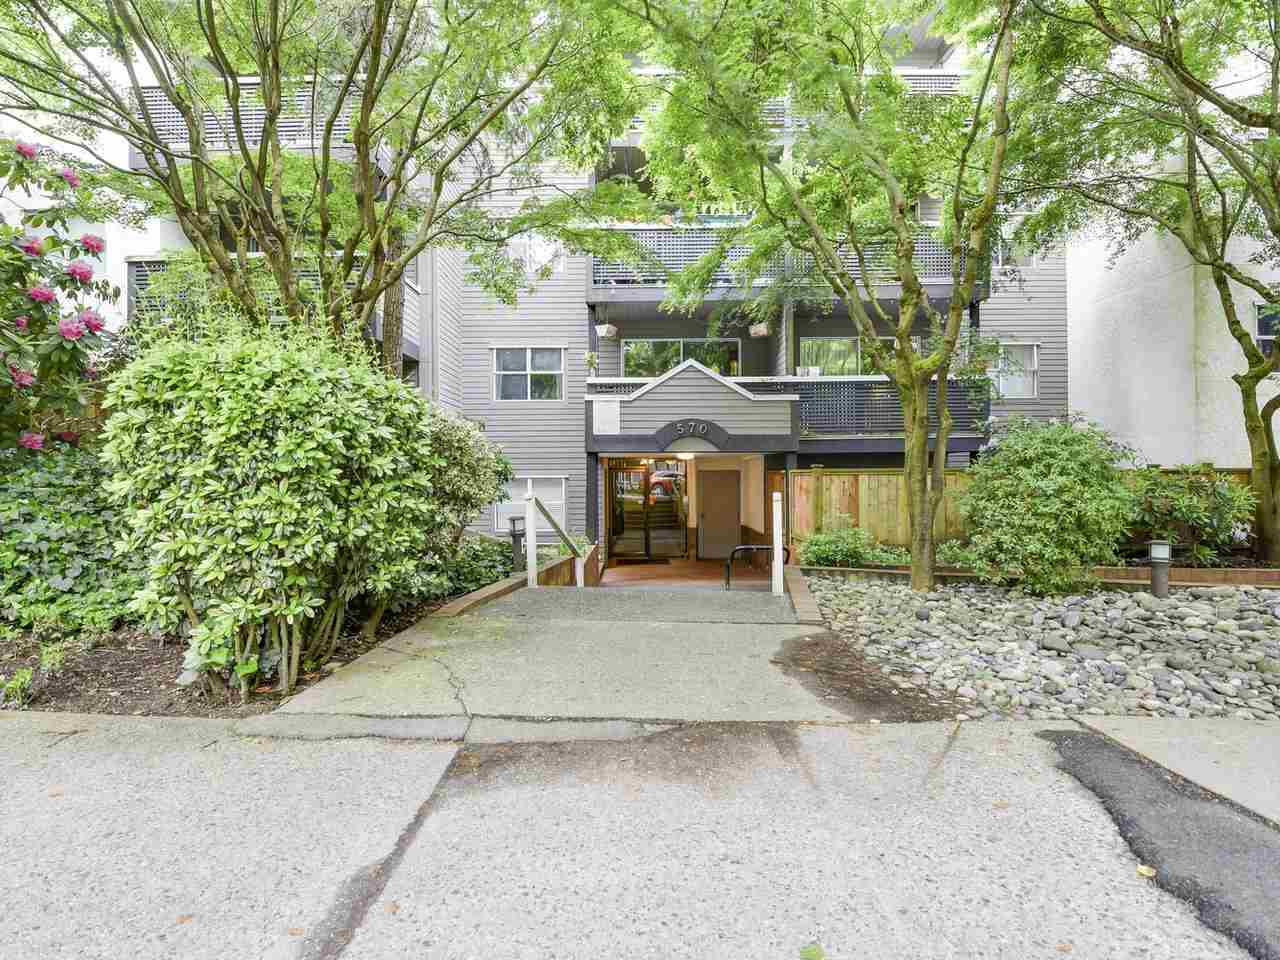 Main Photo: 204 570 E 8TH Avenue in Vancouver: Mount Pleasant VE Condo for sale (Vancouver East)  : MLS®# R2173806